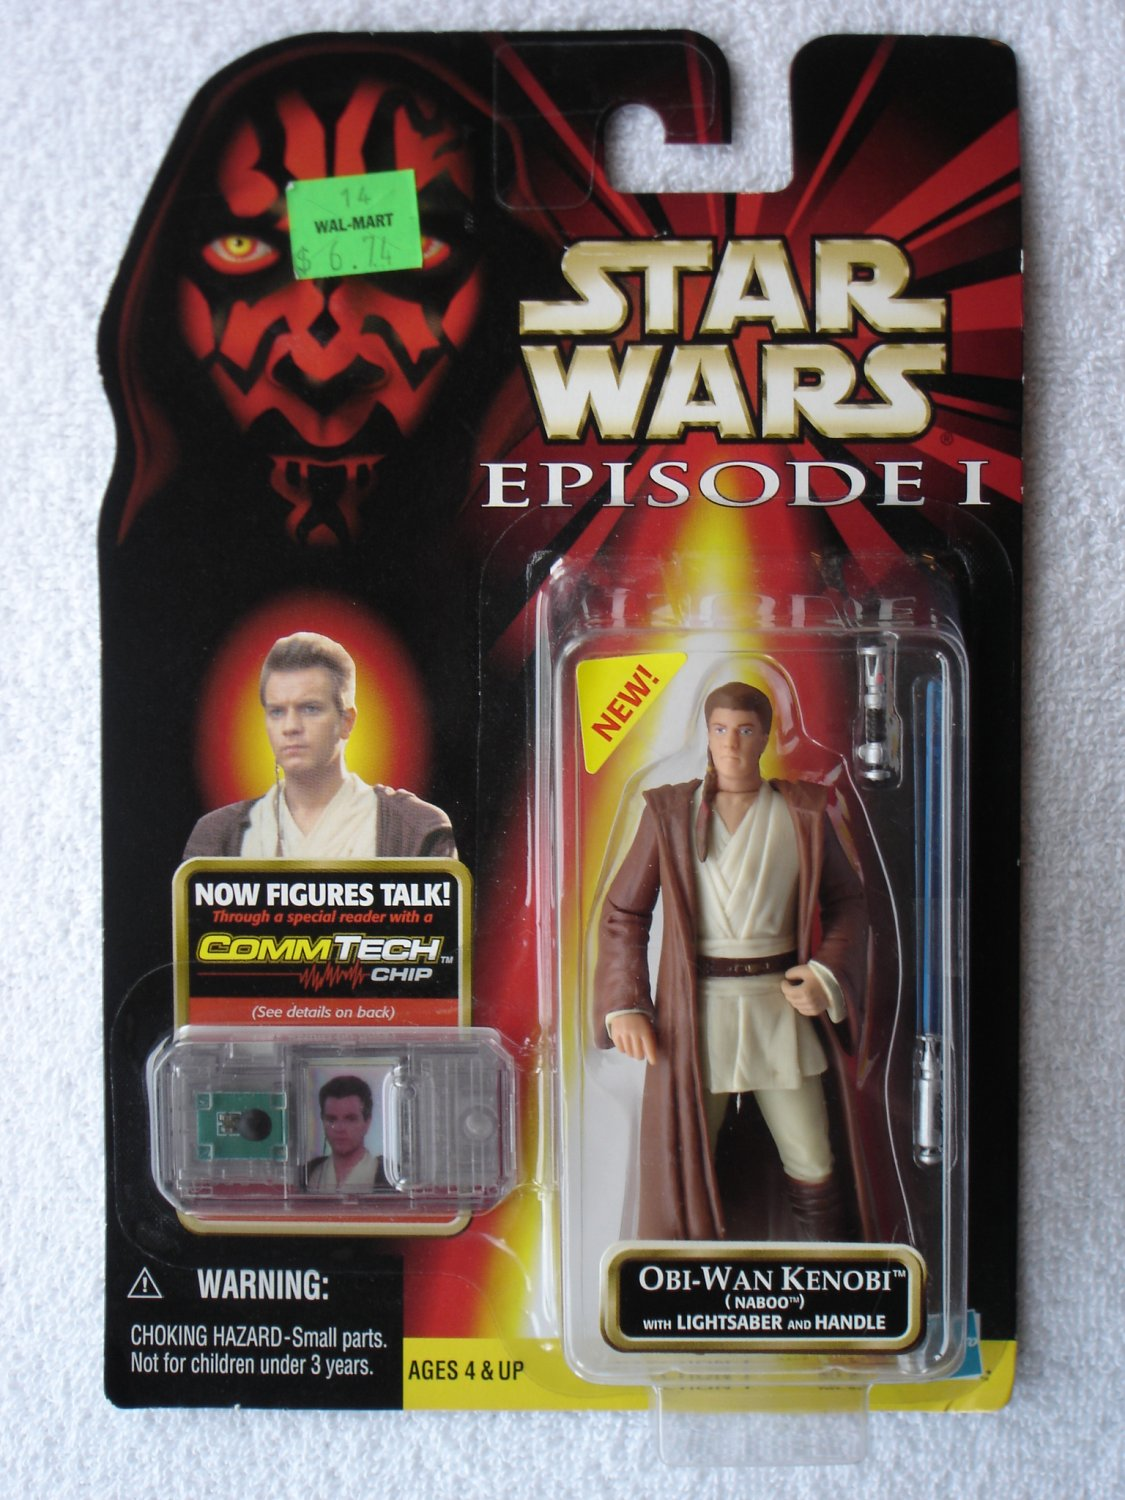 Star Wars TPM Obi-Wan Kenobi (Naboo)